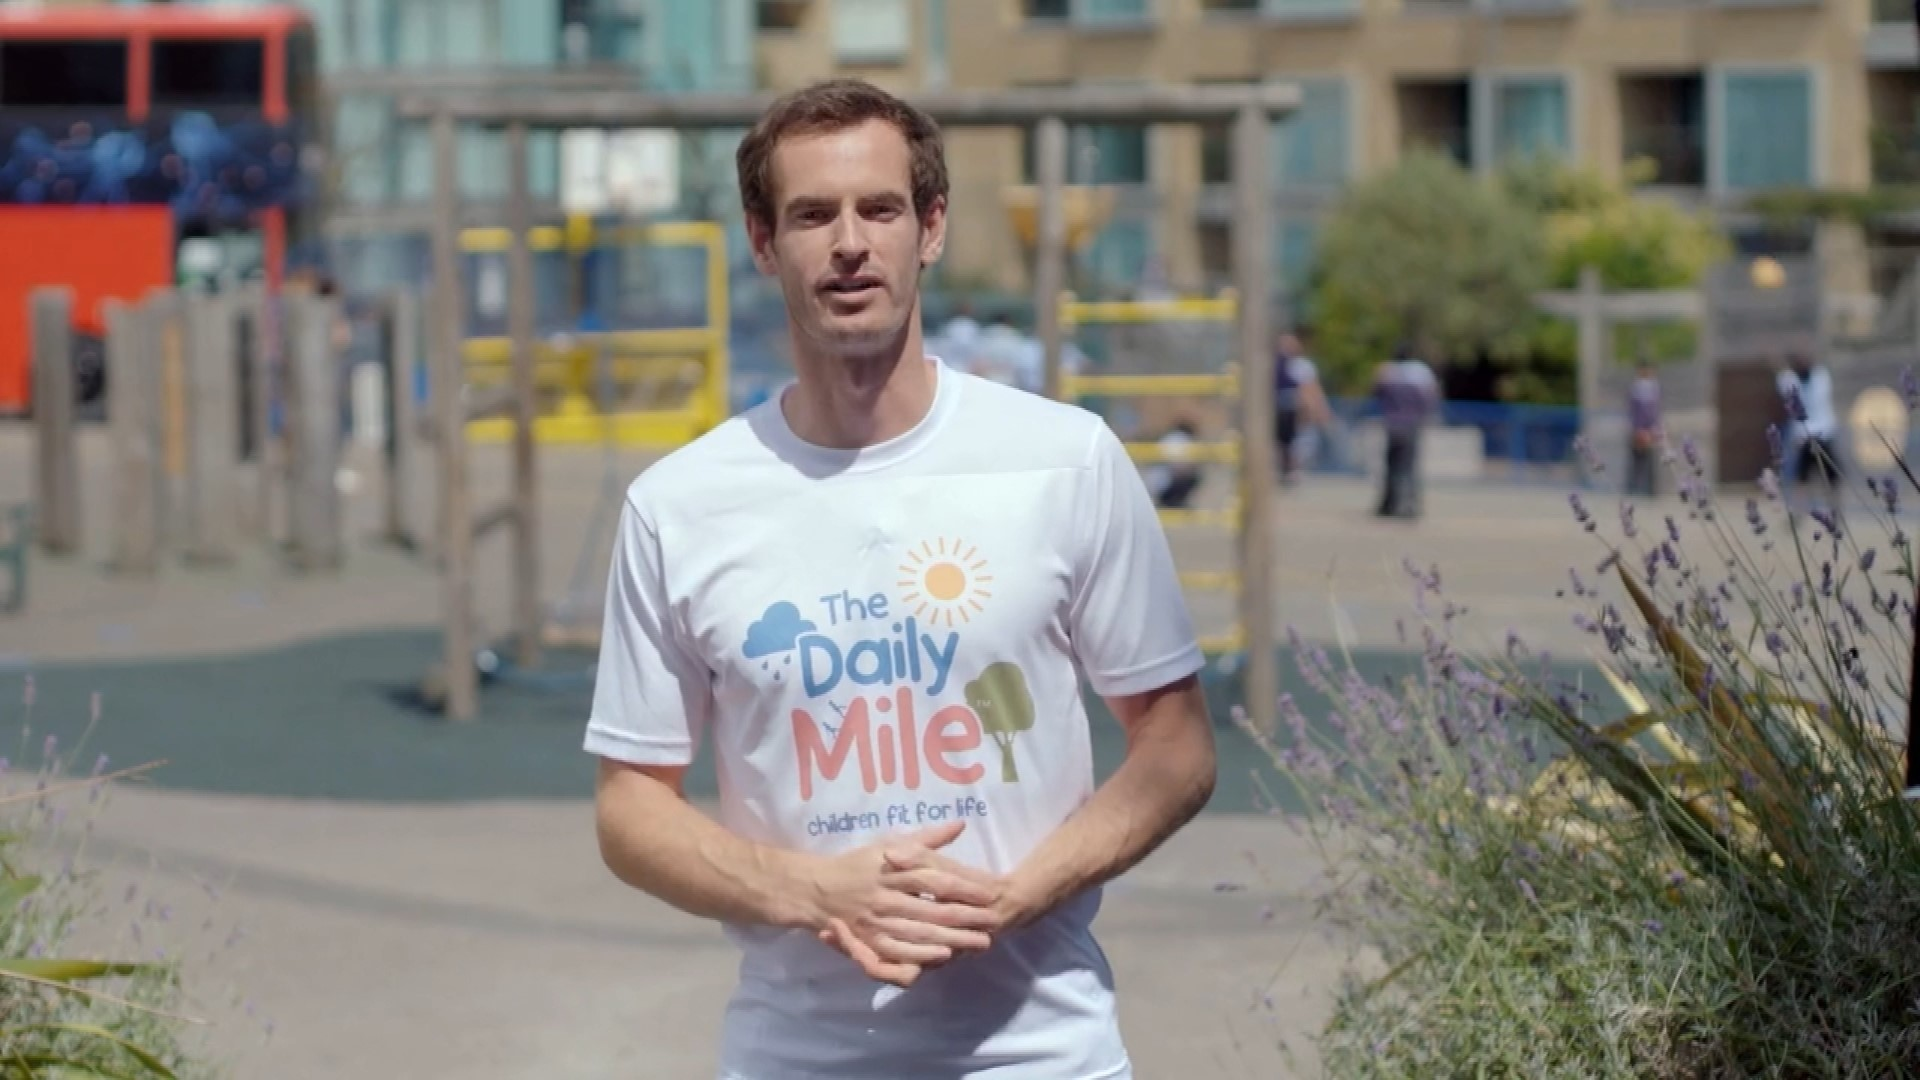 Andy Murray encourages children to run The Daily Mile